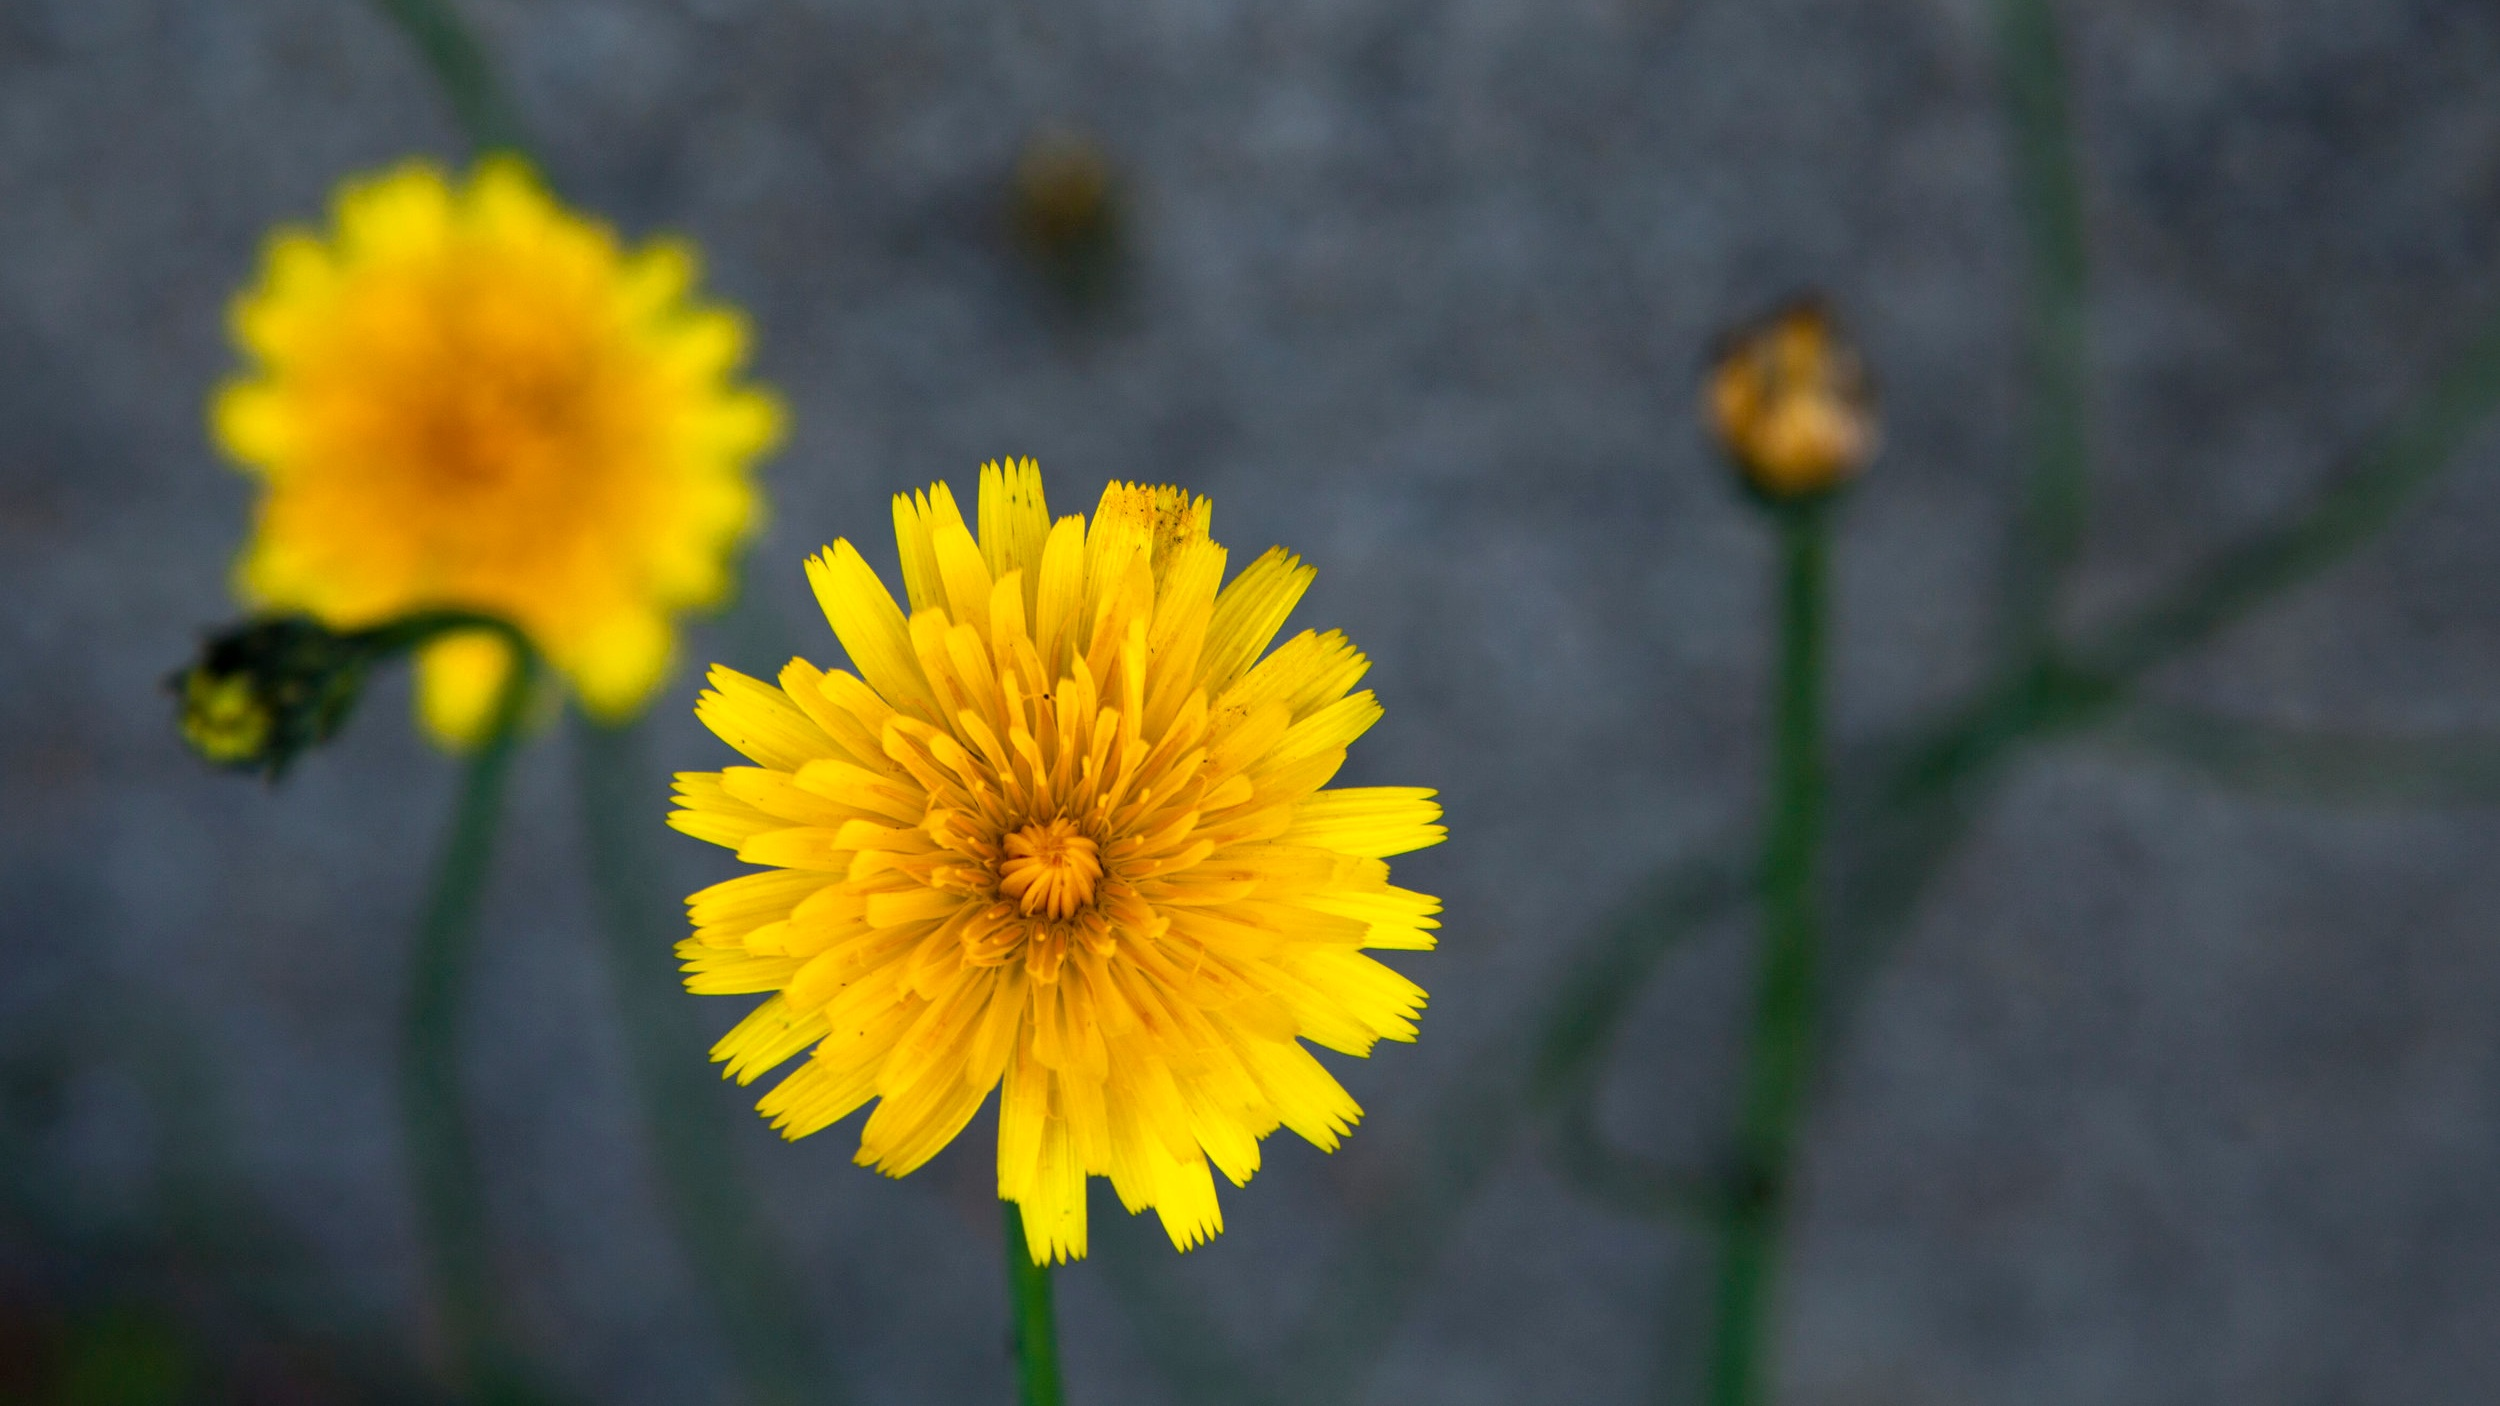 Why Dandelions? - The meaning of healing held in these flowers.